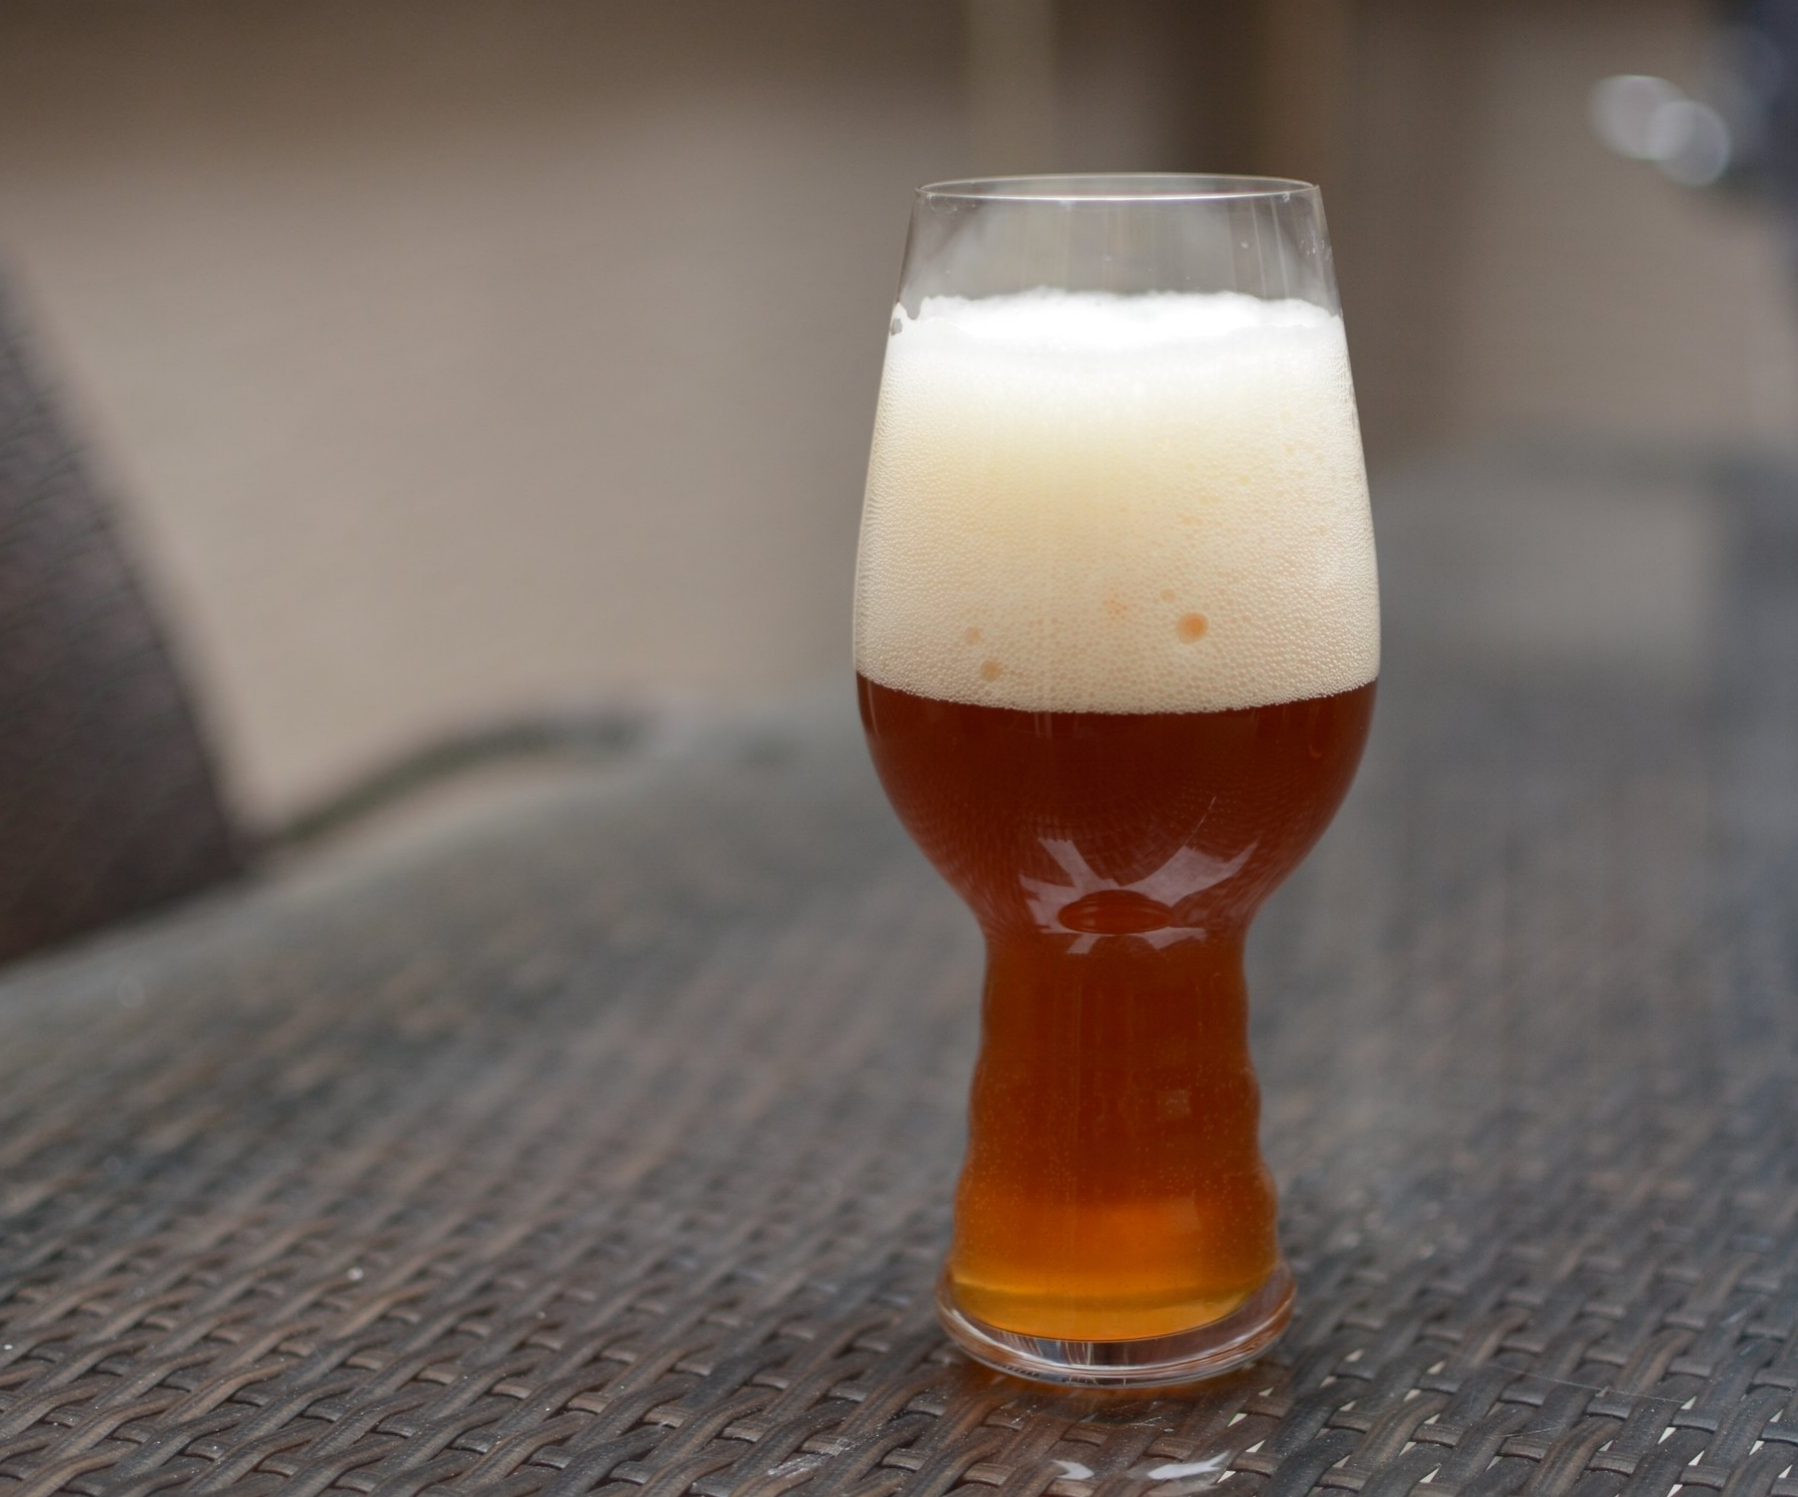 Pumpkin Saison - orange hue from pumpkin. intensity of spice relative to the beholder - too much for me